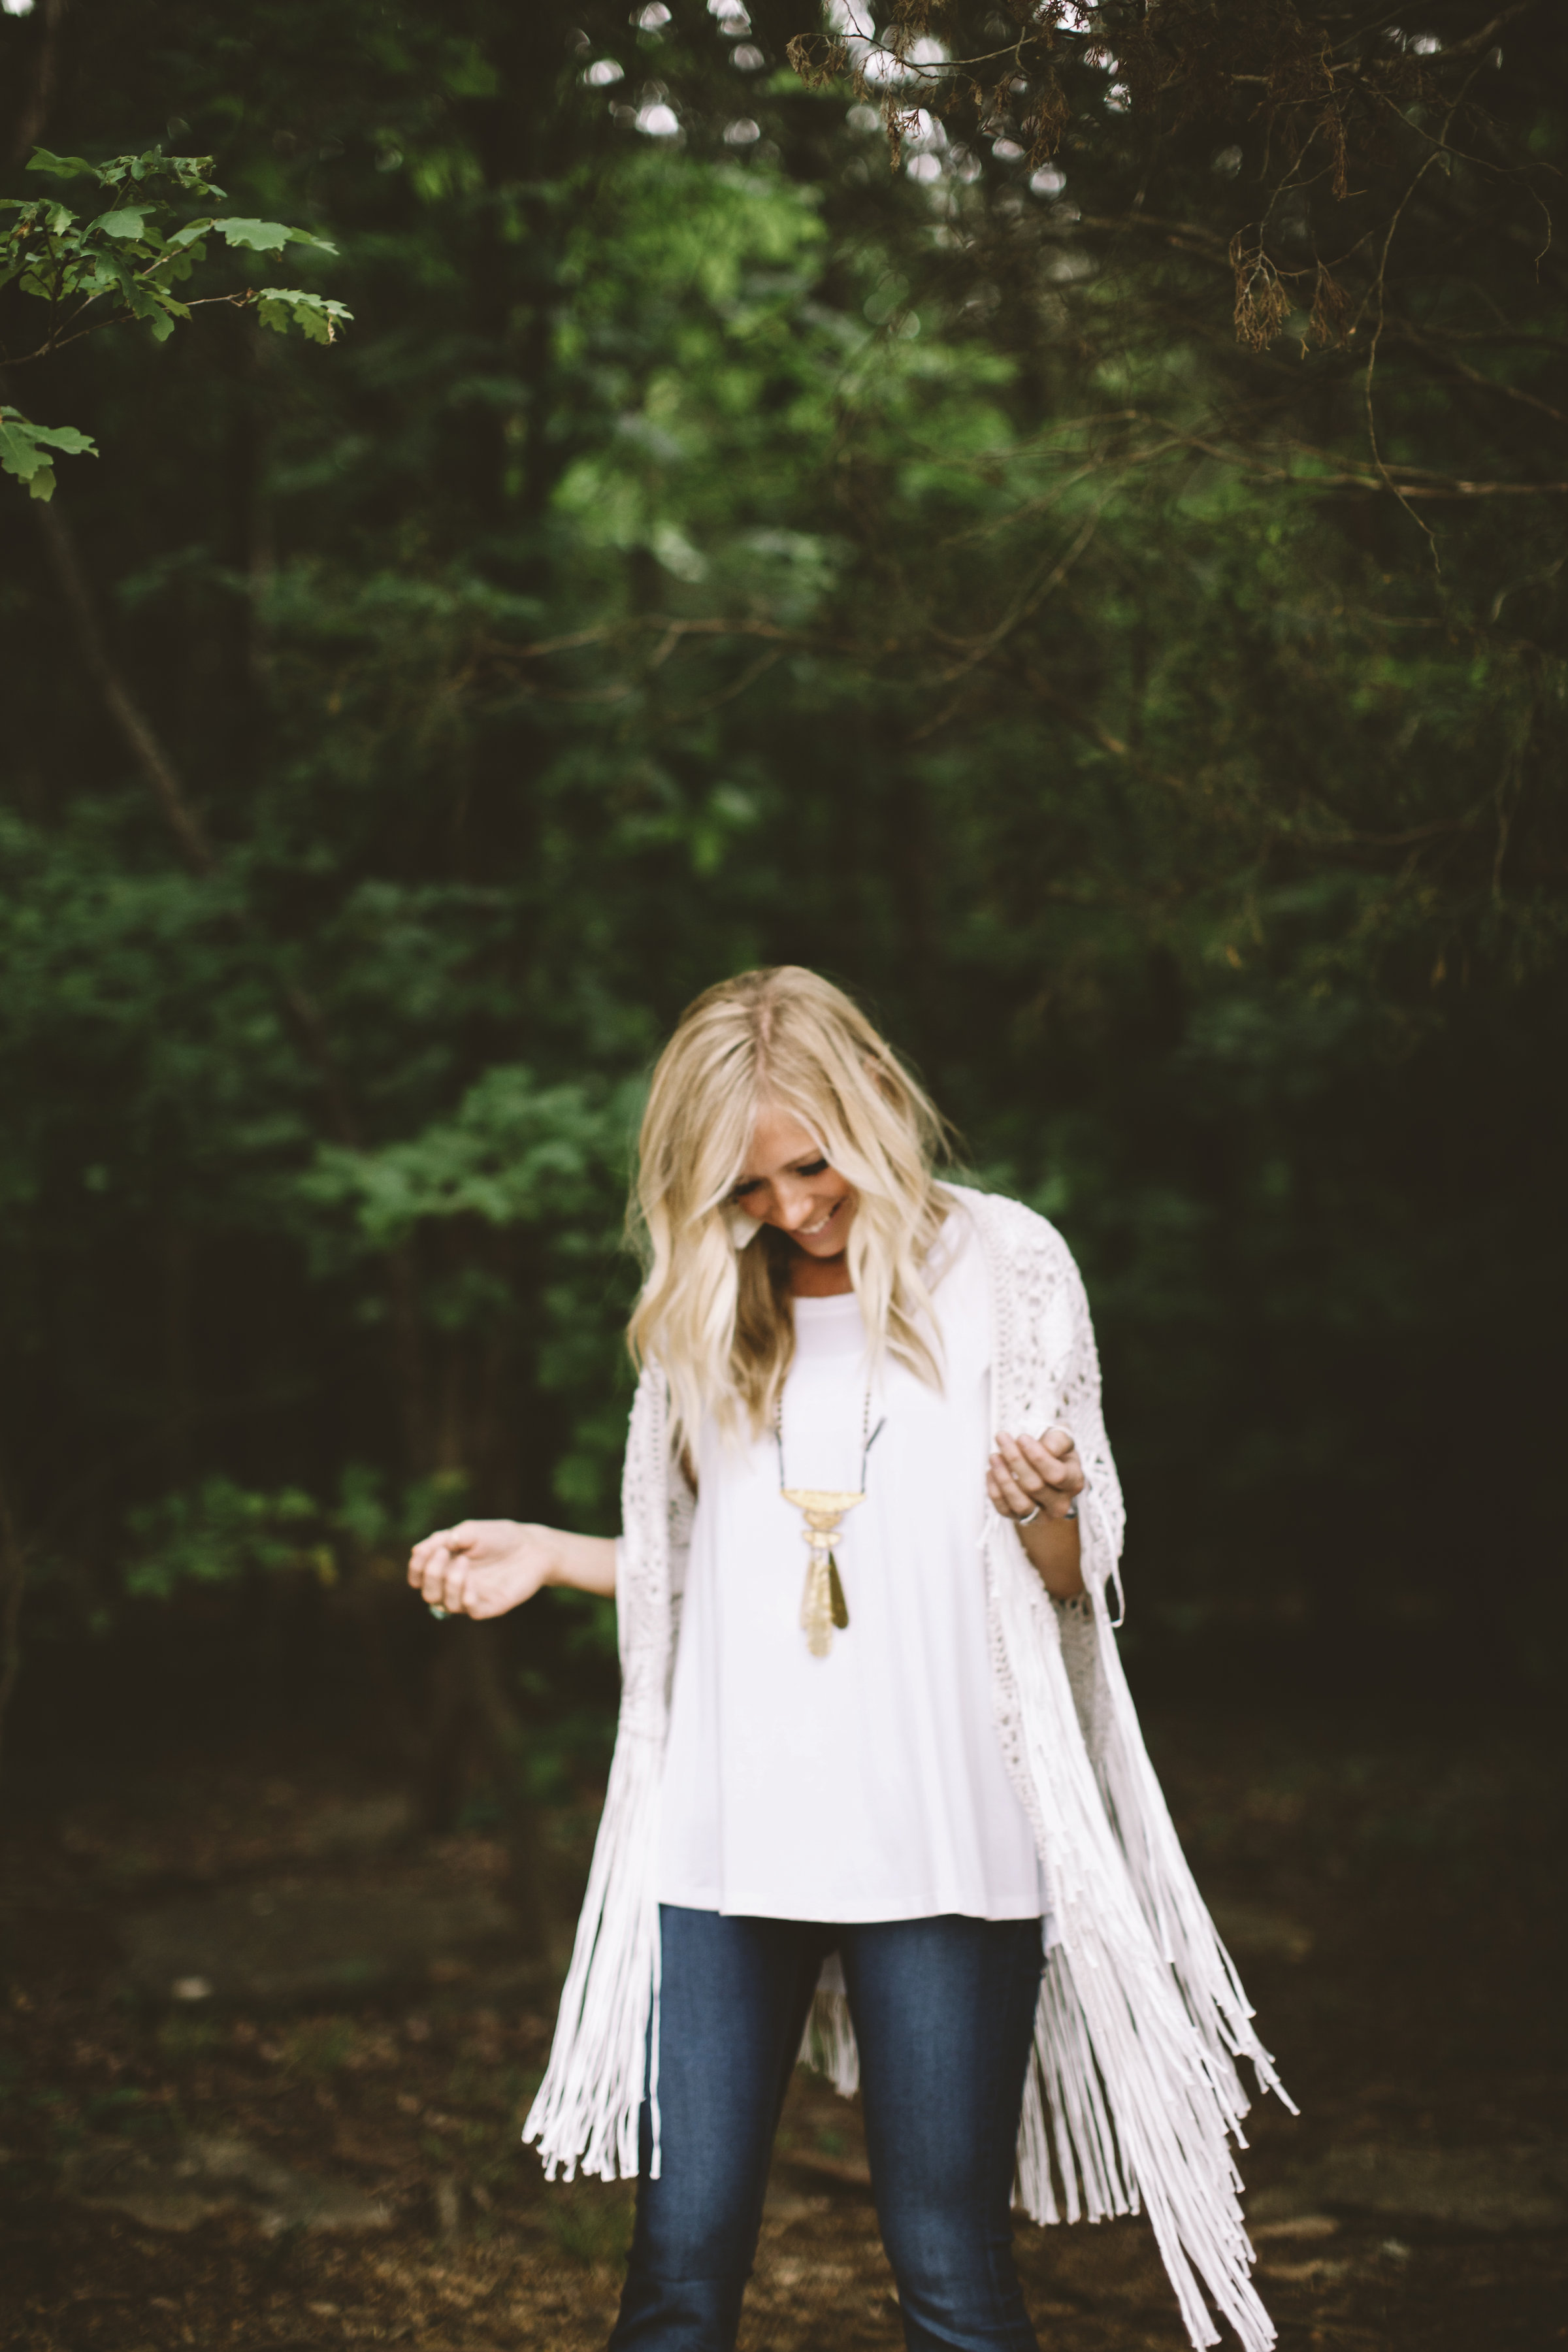 Ellie Holcomb as featured on the Jesus Calling podcast